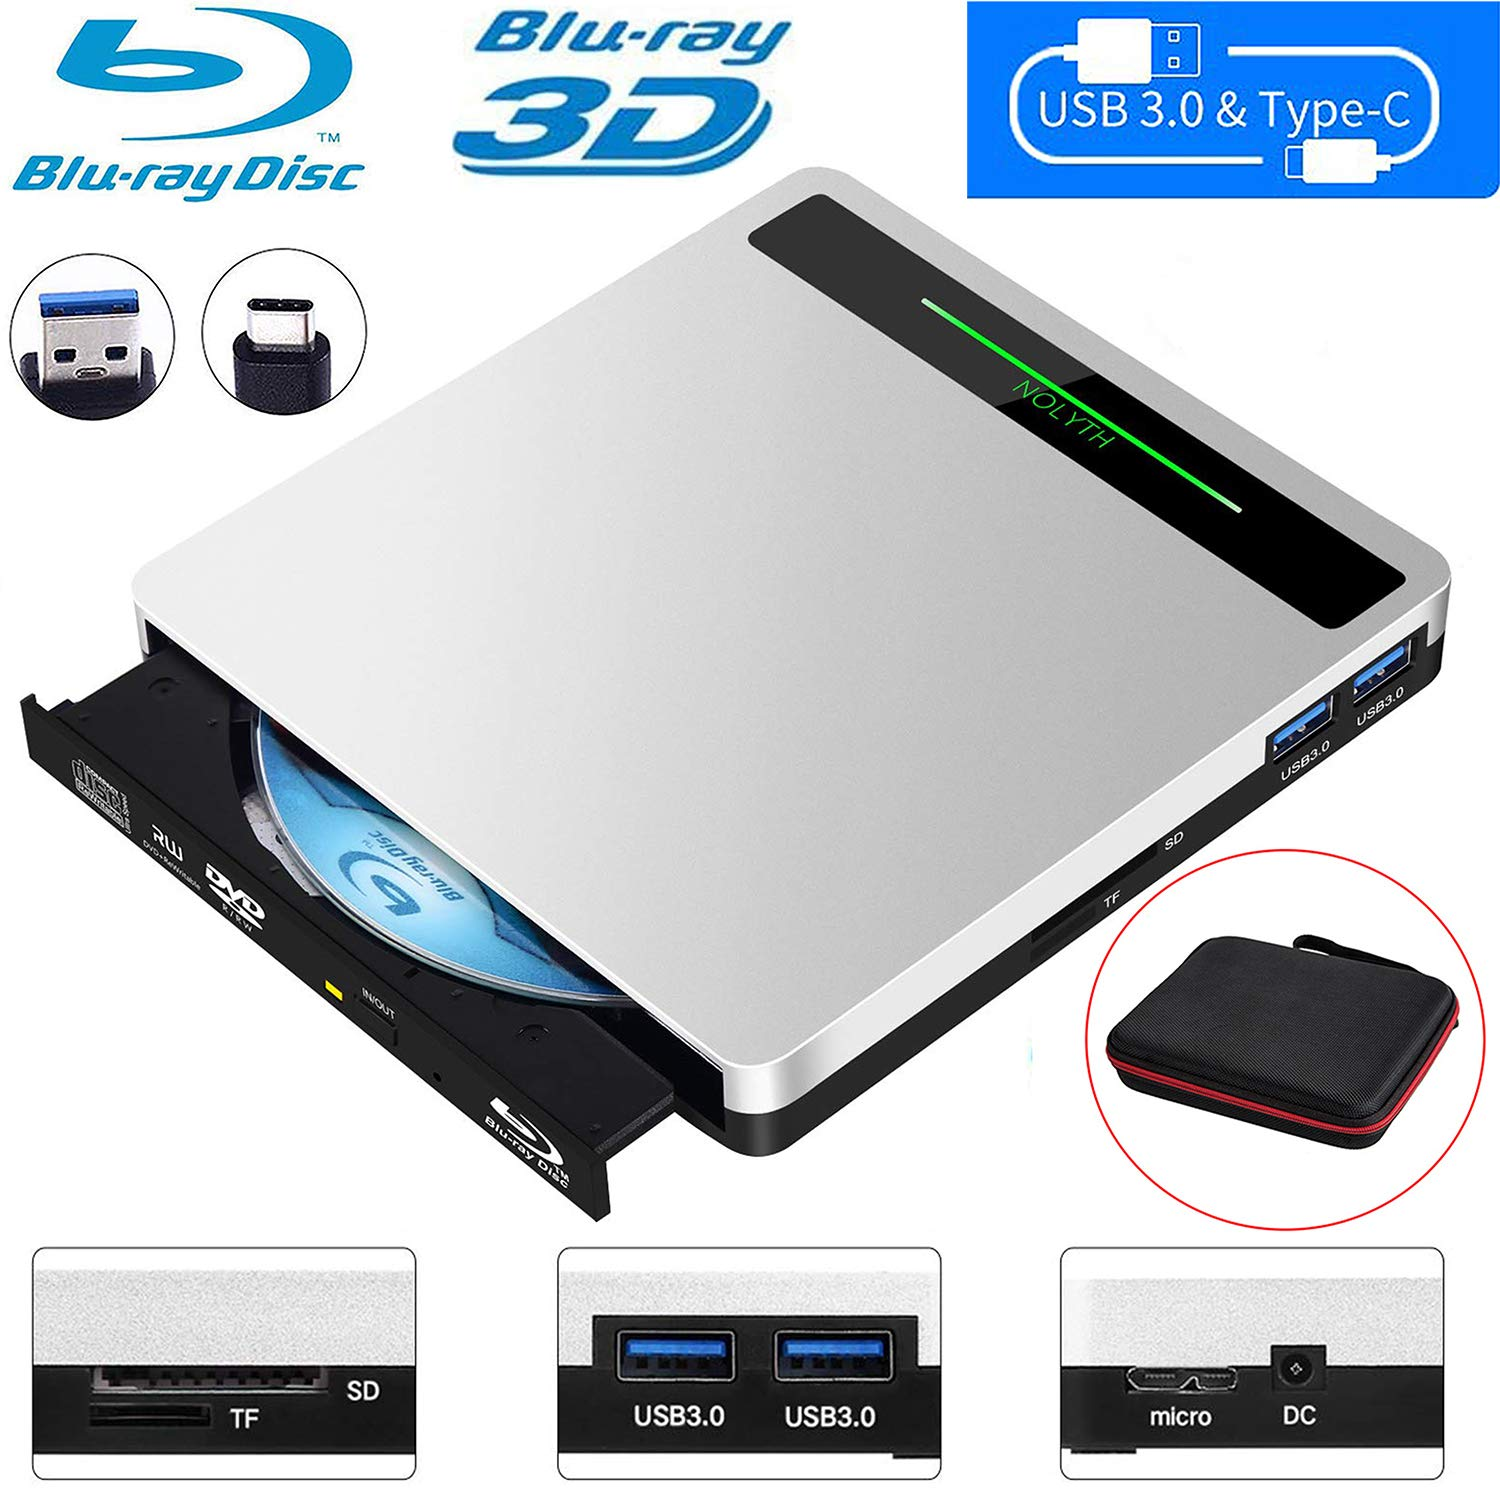 NOLYTH External Bluray Drive 5-in-1 External Blu Ray Drive USB3.0 Bluray Drive Player Burner for Laptop/MacBook/Windows10/PC with SD TF Card Reader/2 USB3.0 Hub/BD-ROM/R/RE by NOLYTH